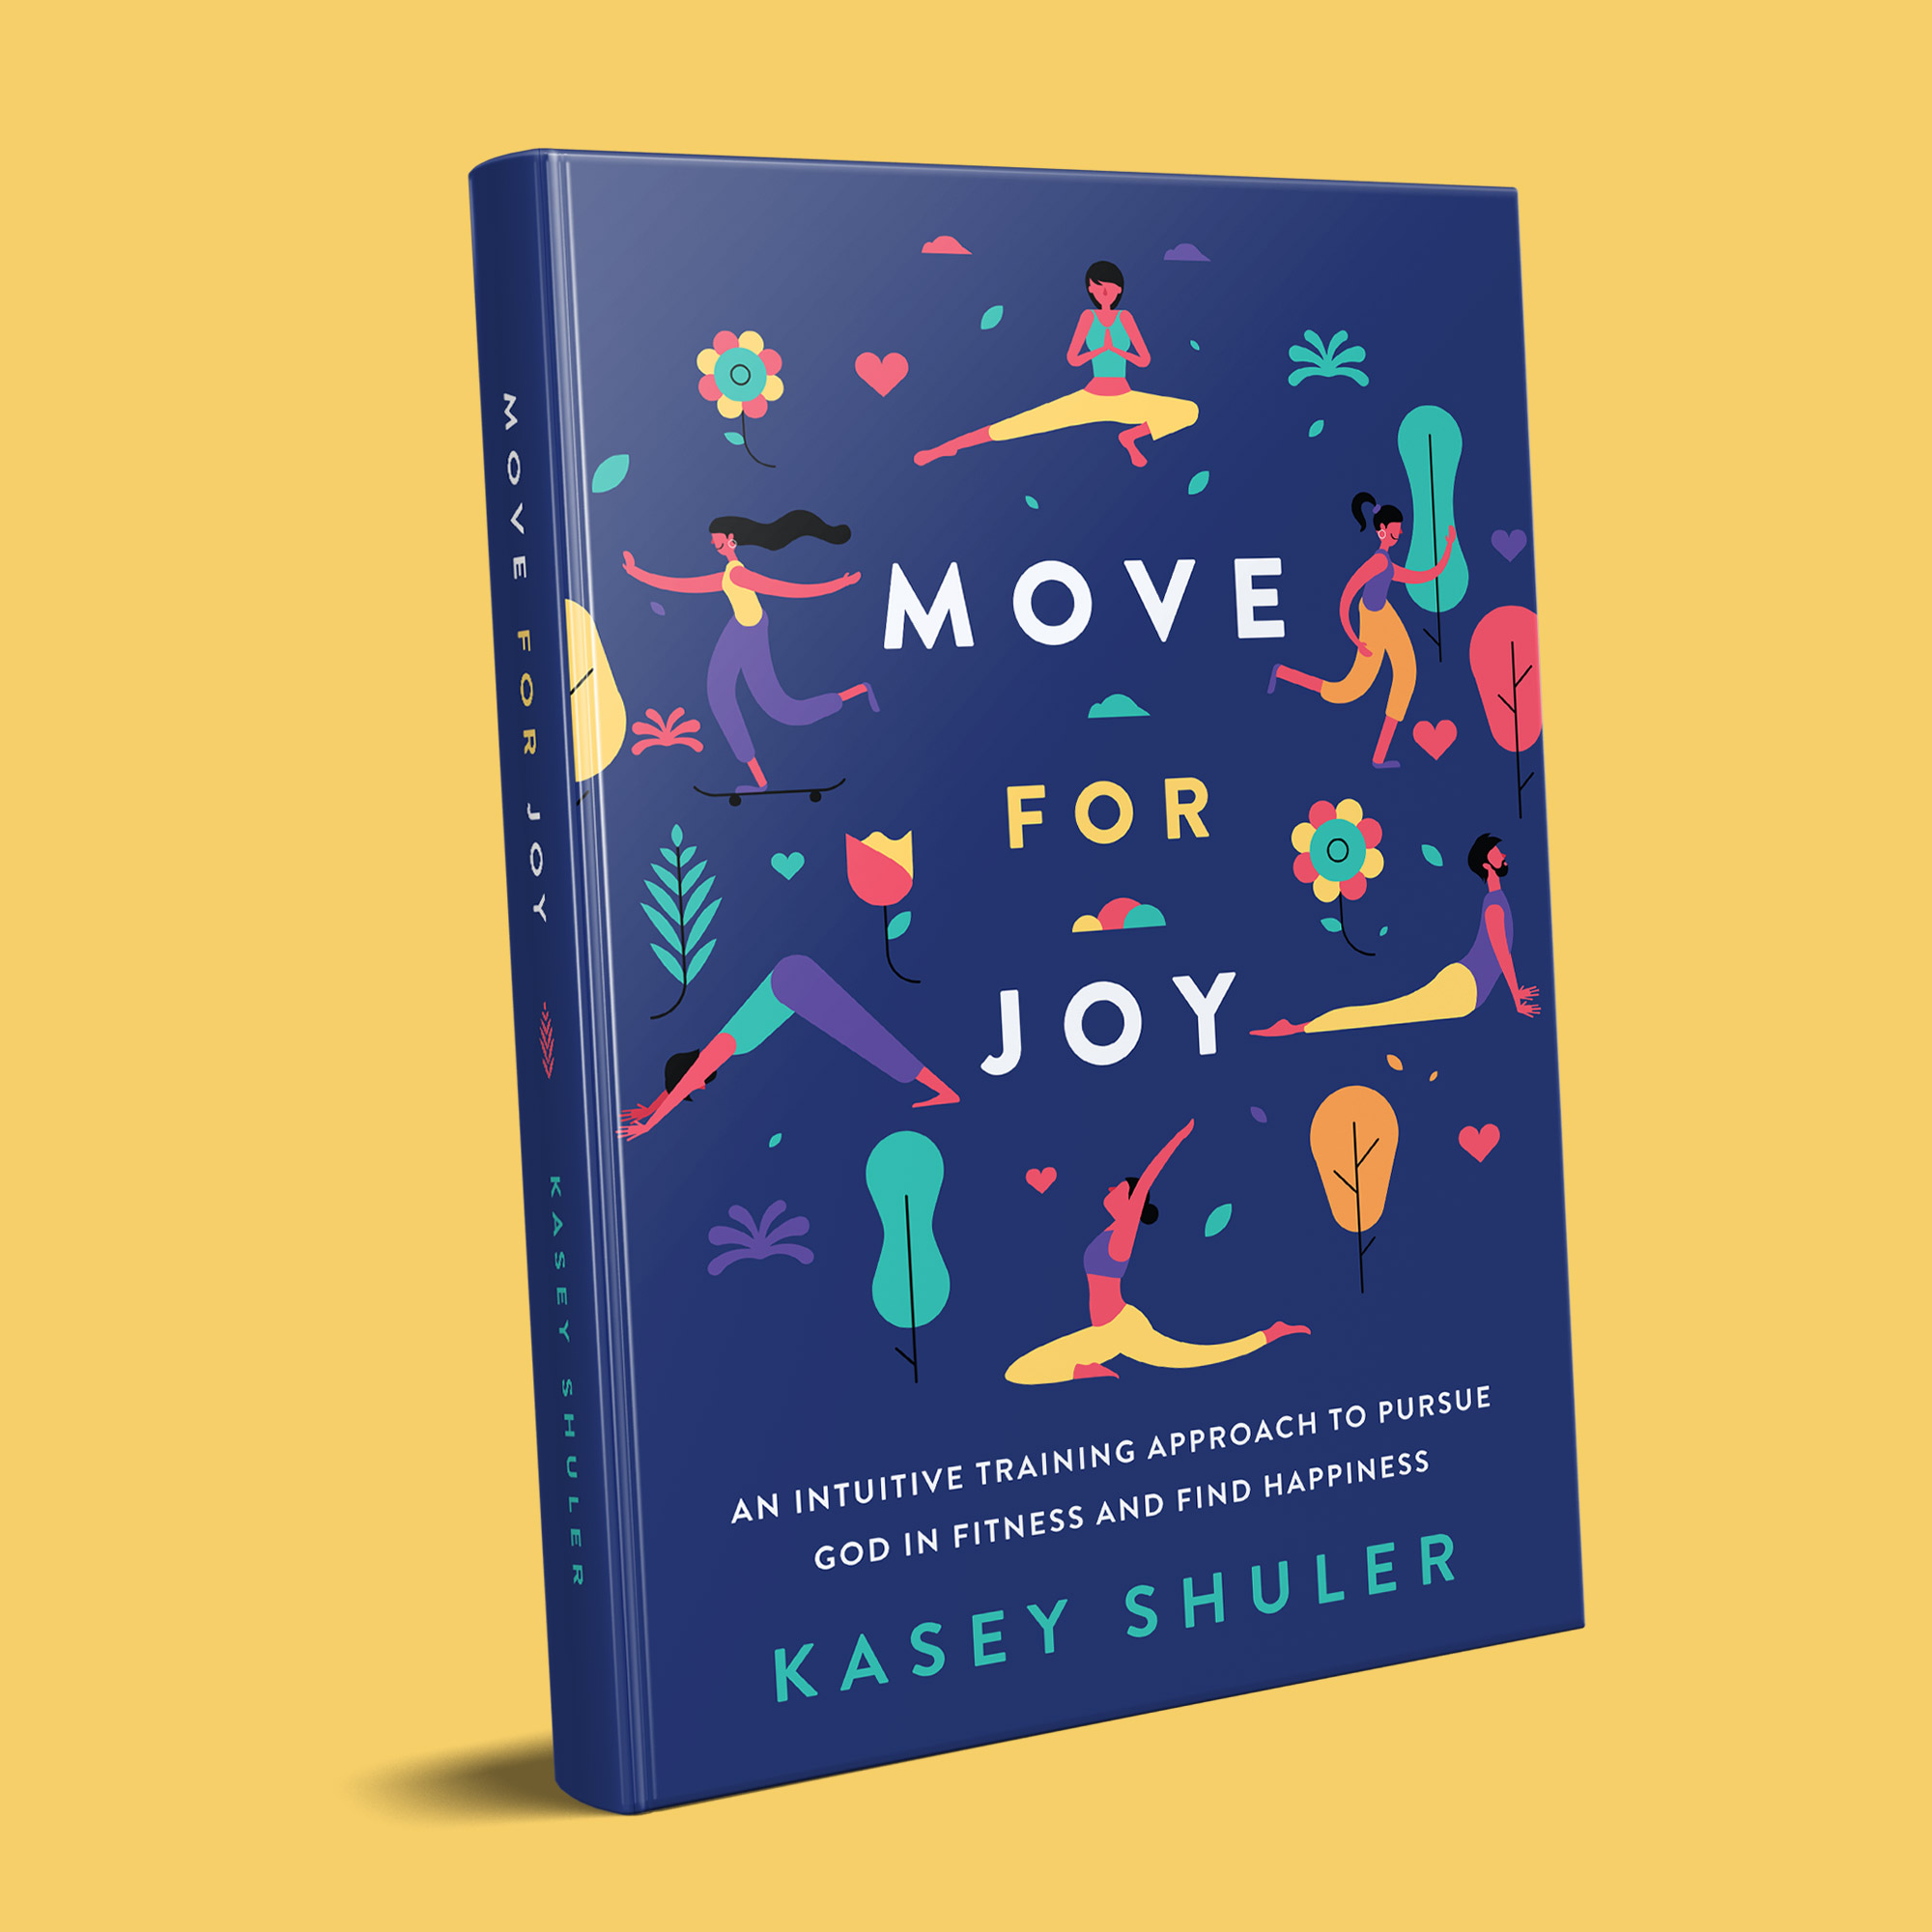 MoveForJoyBook-background.png